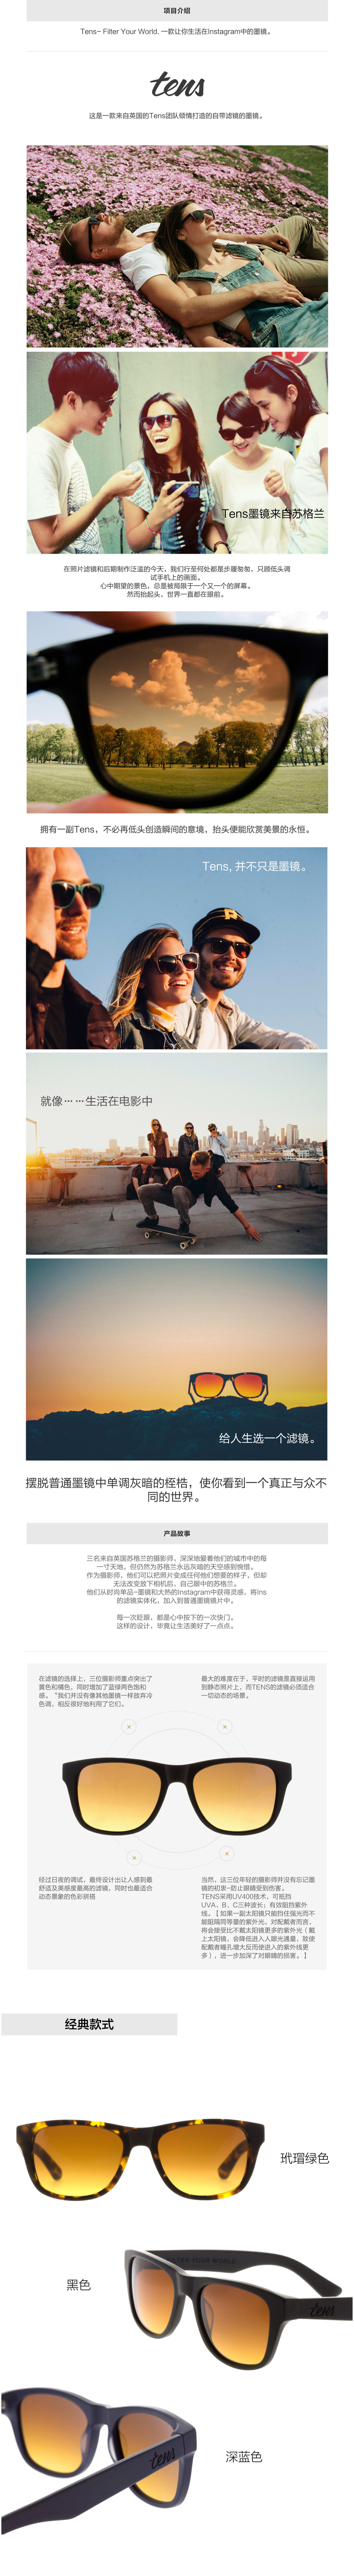 Tens - Chinese crowdfunding campaign